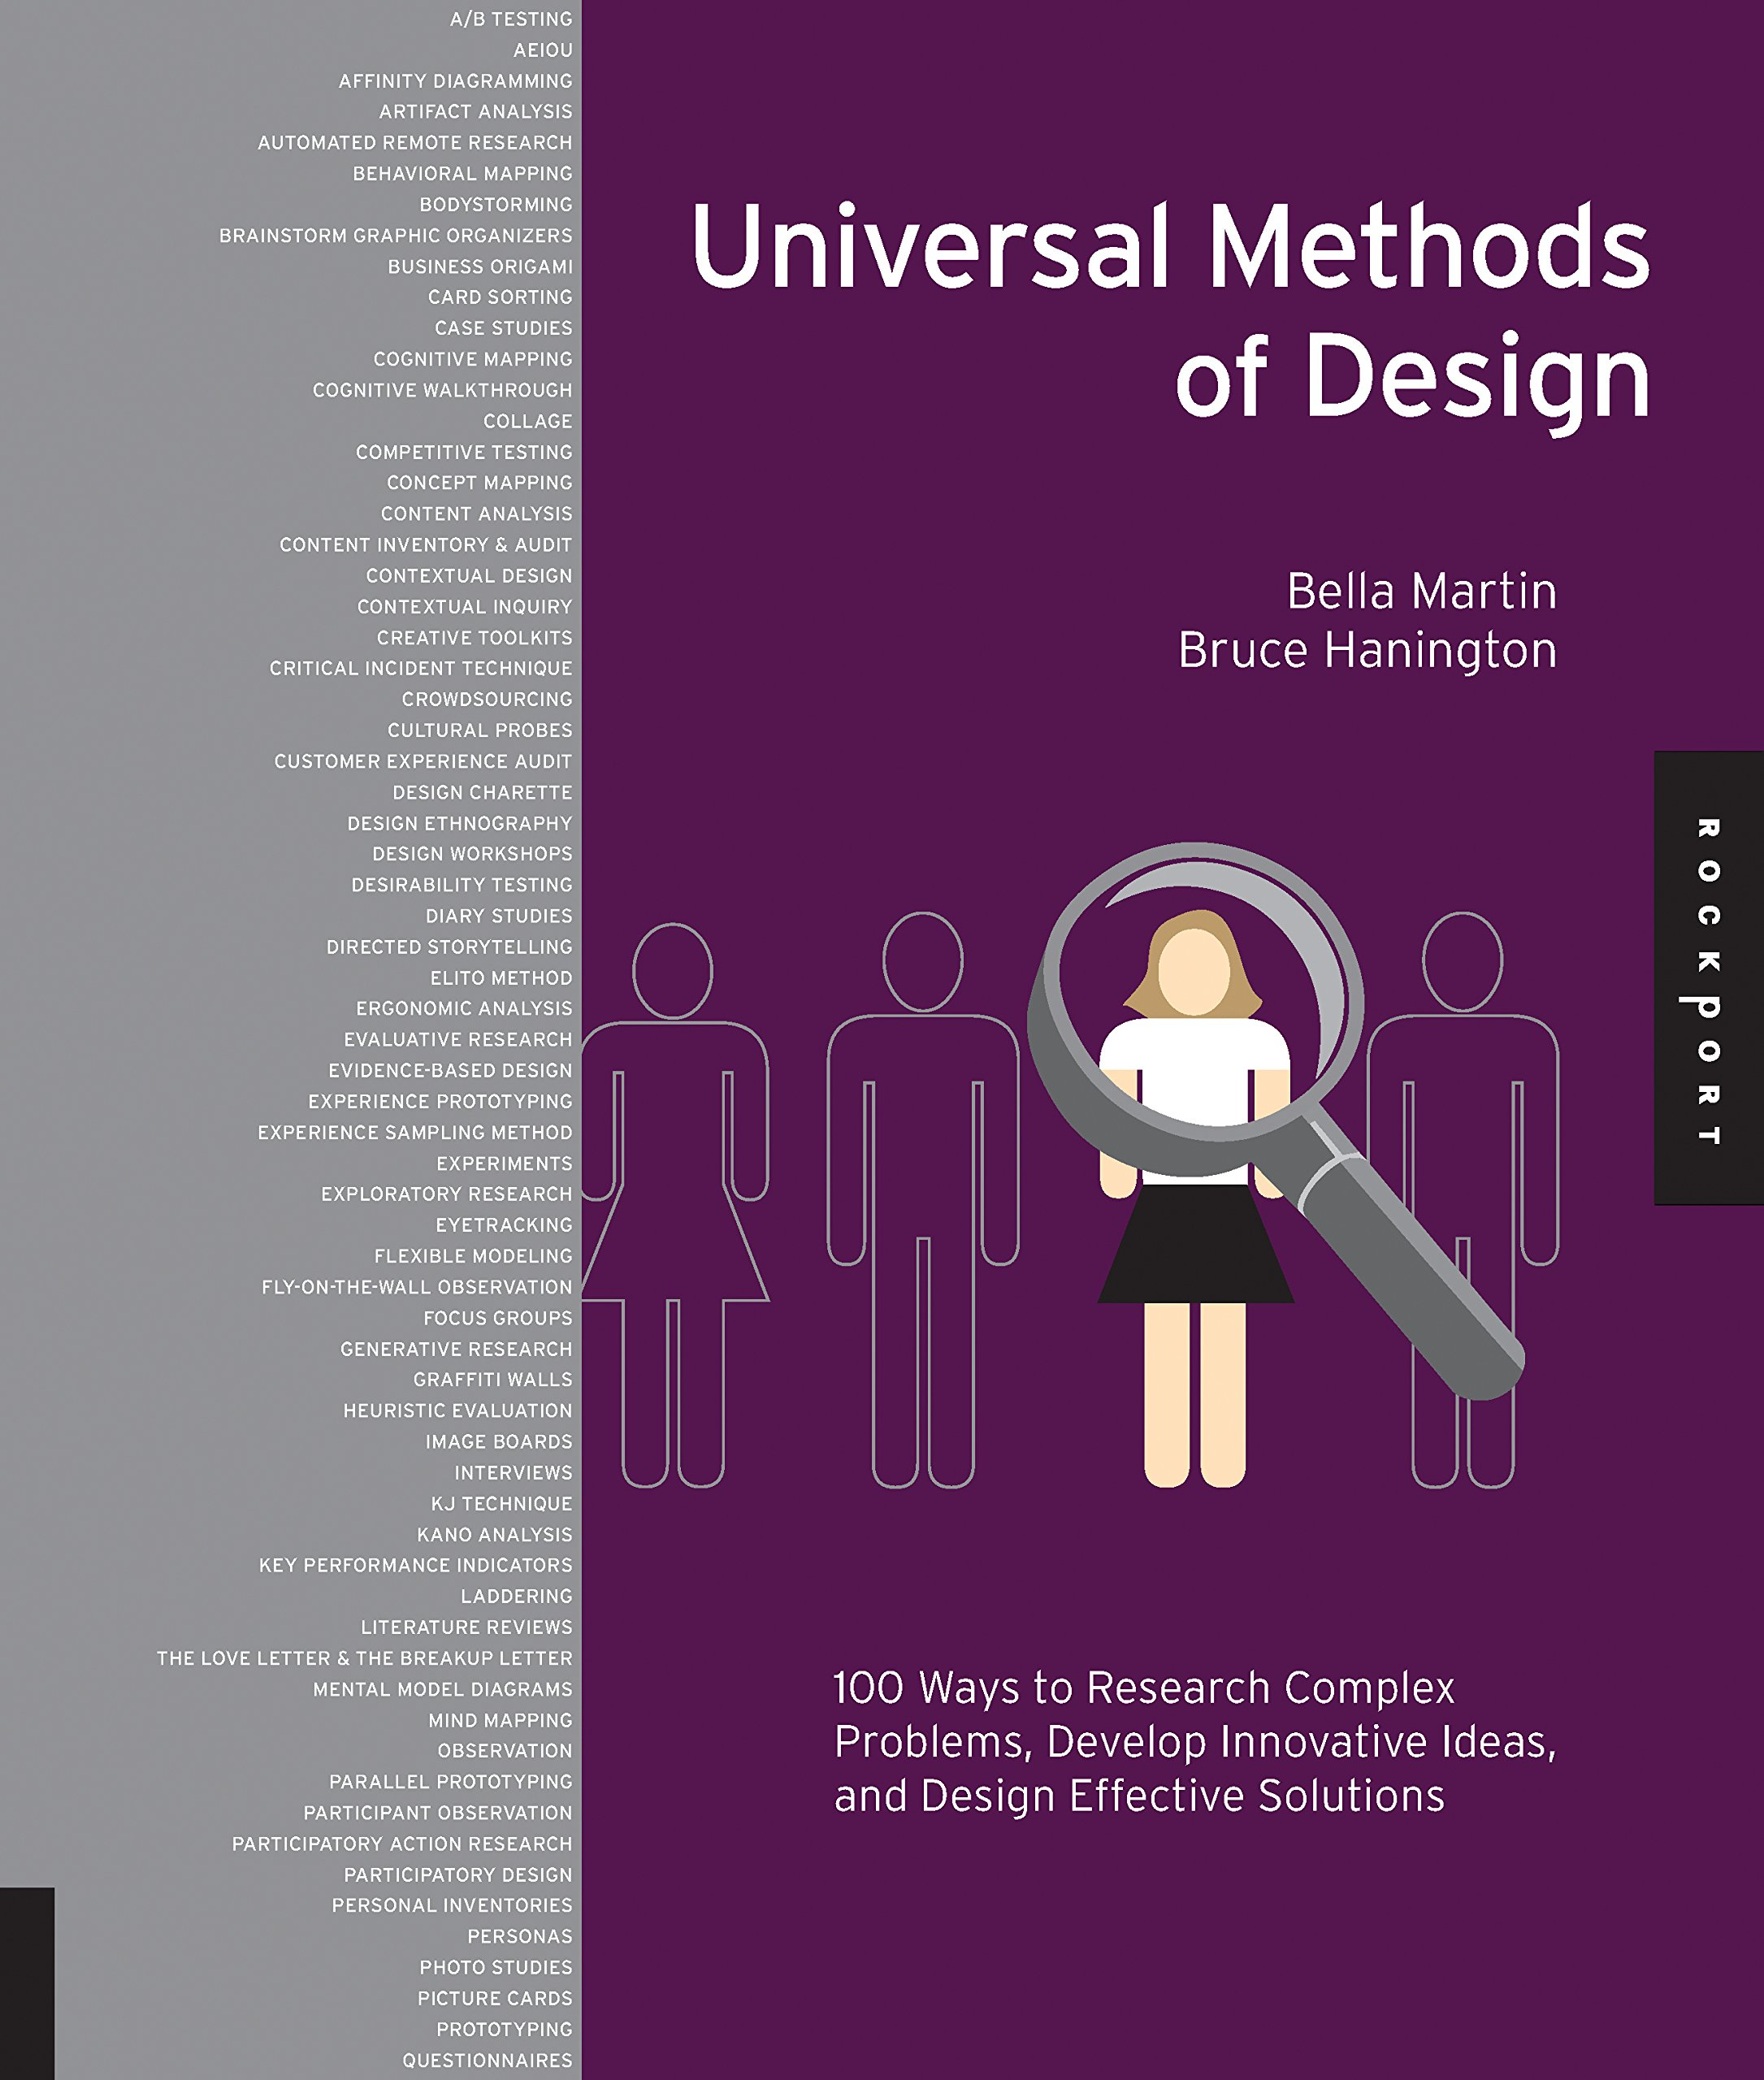 Delicieux Universal Methods Of Design: 100 Ways To Research Complex Problems, Develop  Innovative Ideas, And Design Effective Solutions: Bruce Hanington, Bella  Martin: ...